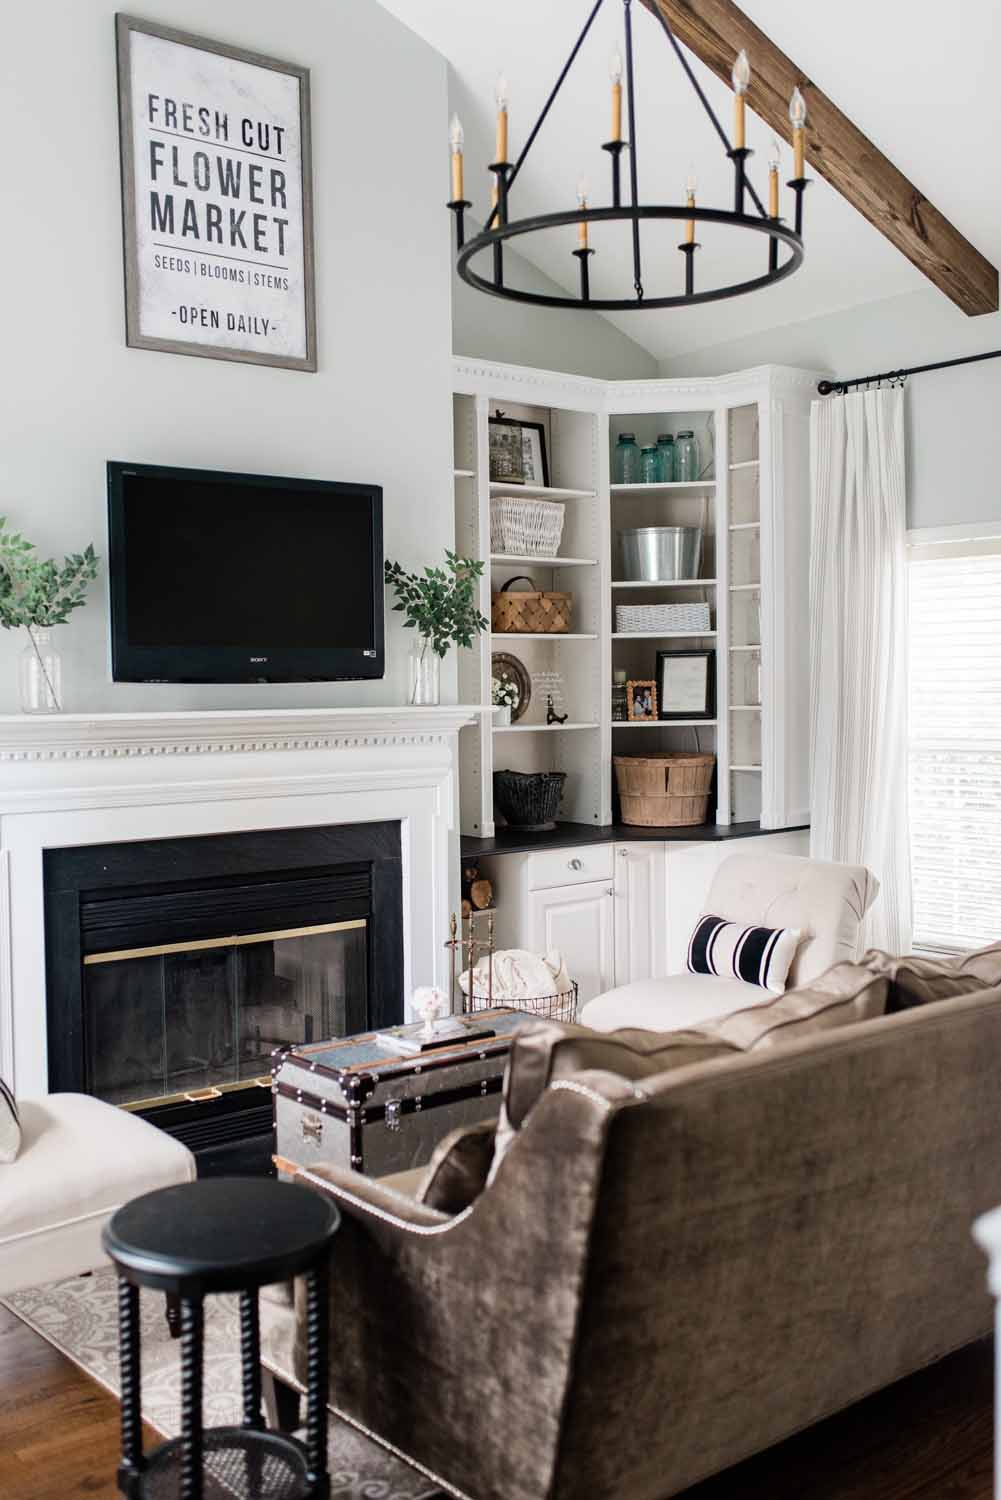 Elizabeth Burns Design Raleigh Interior Designer 1990s house remodel before and after Sherwin Williams Silver Strand SW 7057 Living Room with DIY Beams Budget Renovation (1).jpg